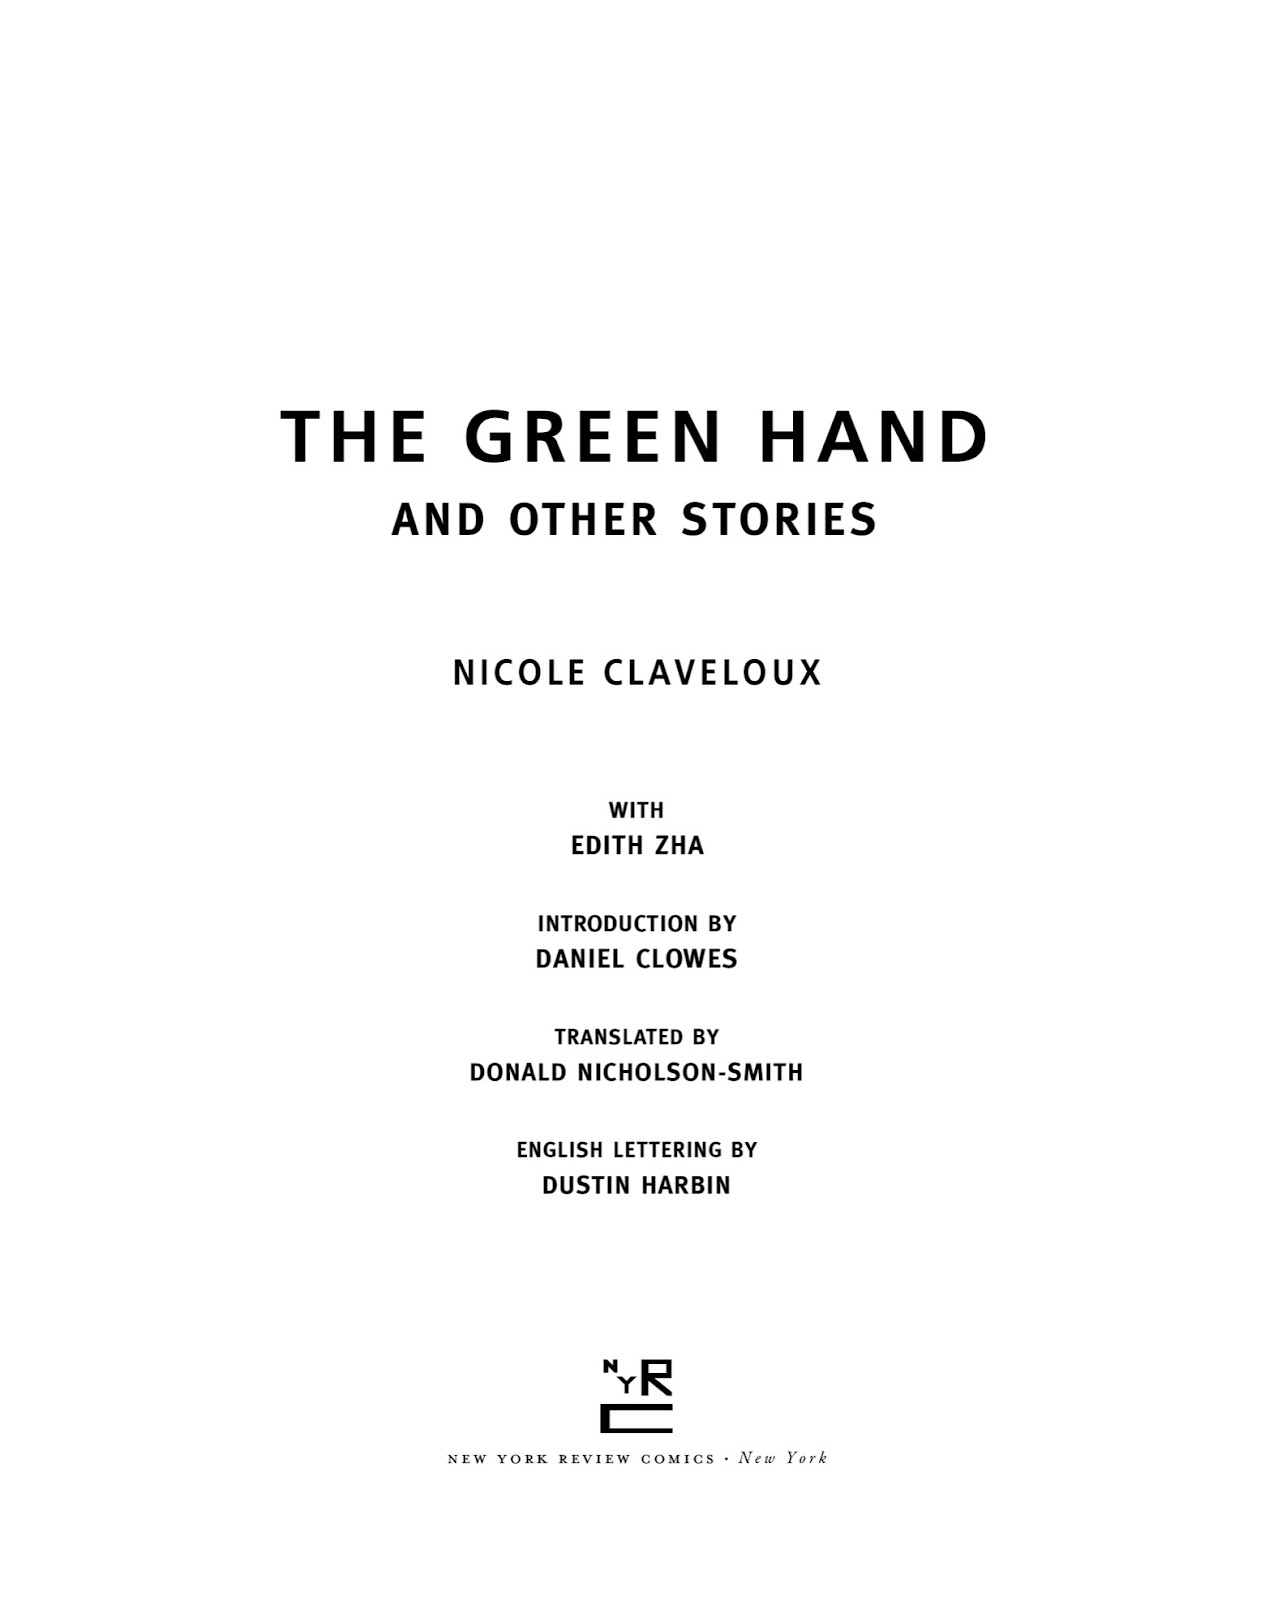 Read online The Green Hand and Other Stories comic -  Issue # TPB - 4